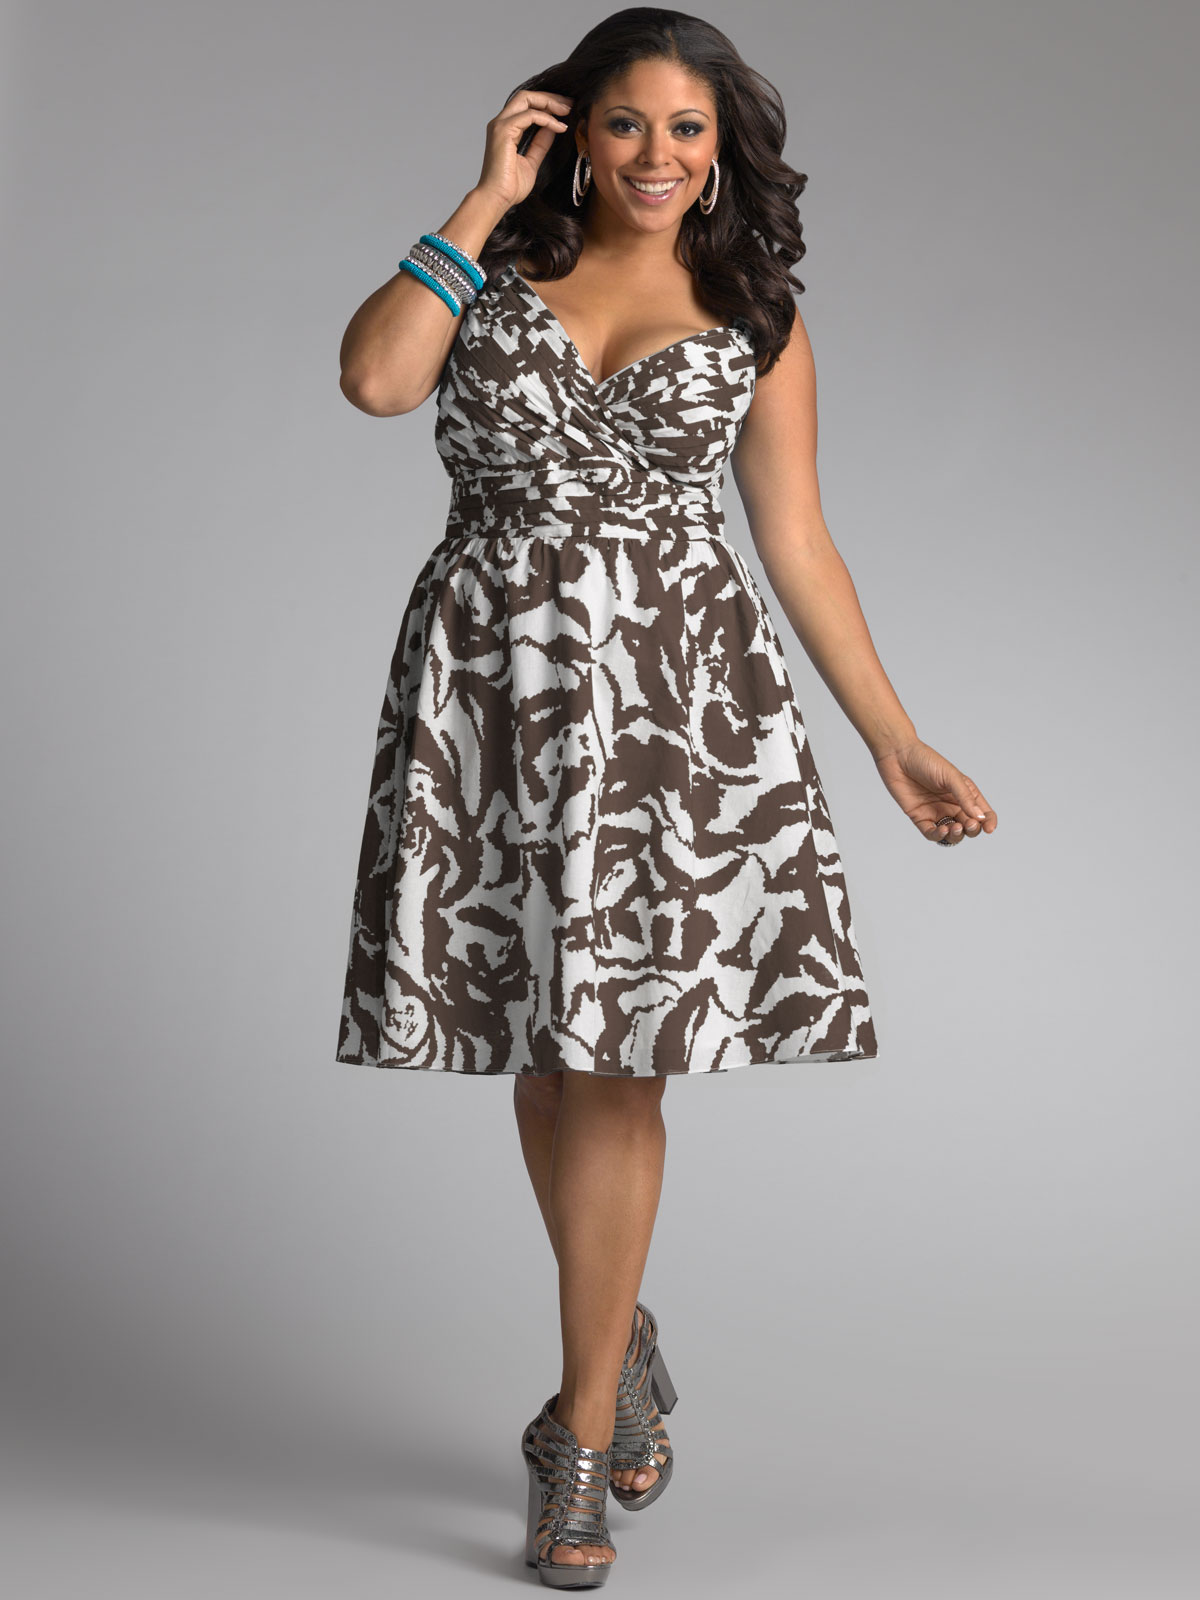 If you're looking to embody maximum moxie, turn to ModCloth's vintage plus size dresses and take your pick! Our retro silhouettes, fresh designs, and timeless styles alike are enough to win the heart of anyone with an eye for extended size dresses.